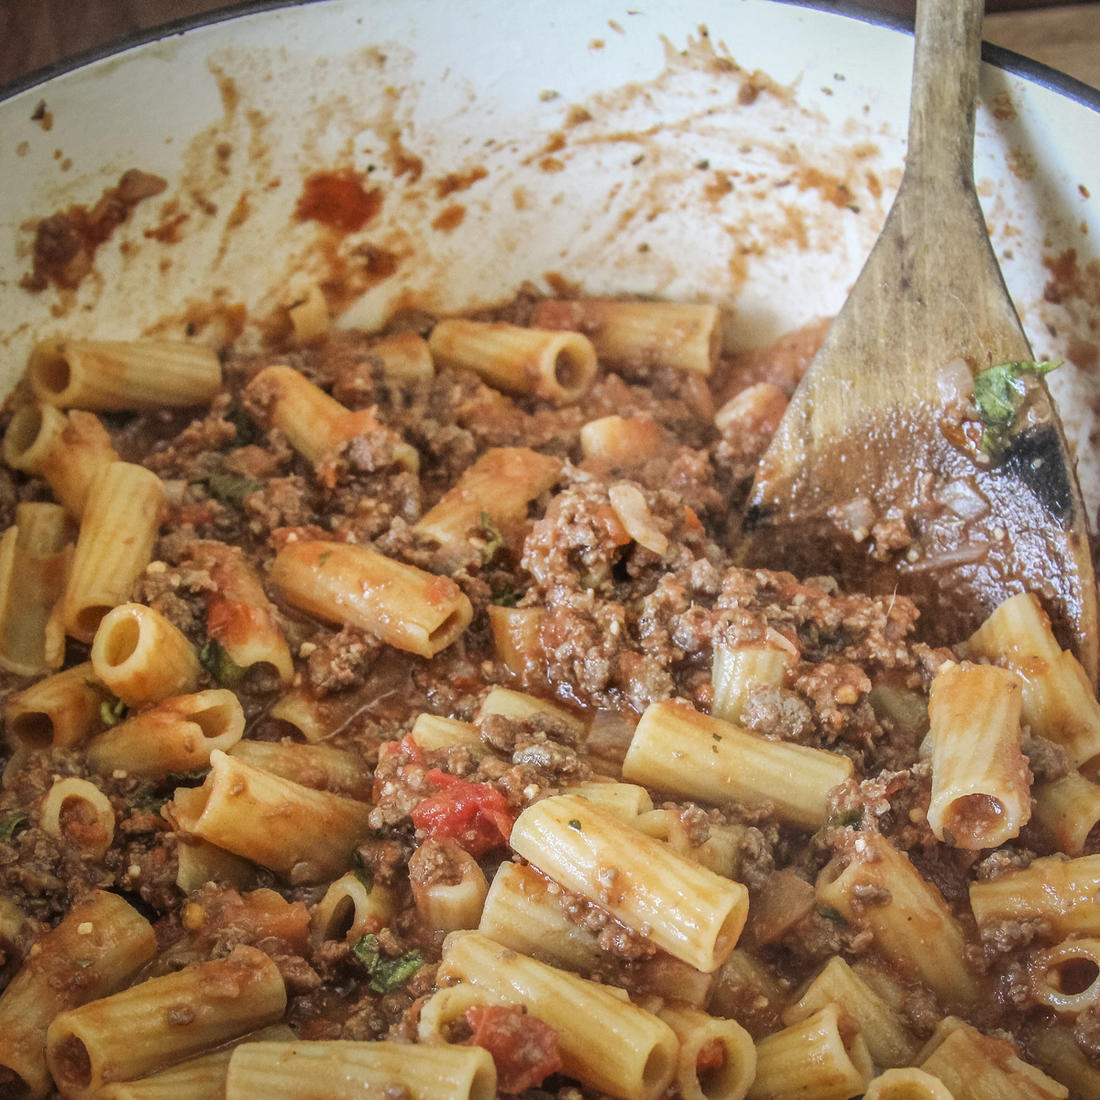 Stir the al dente rigatoni into the meat sauce.